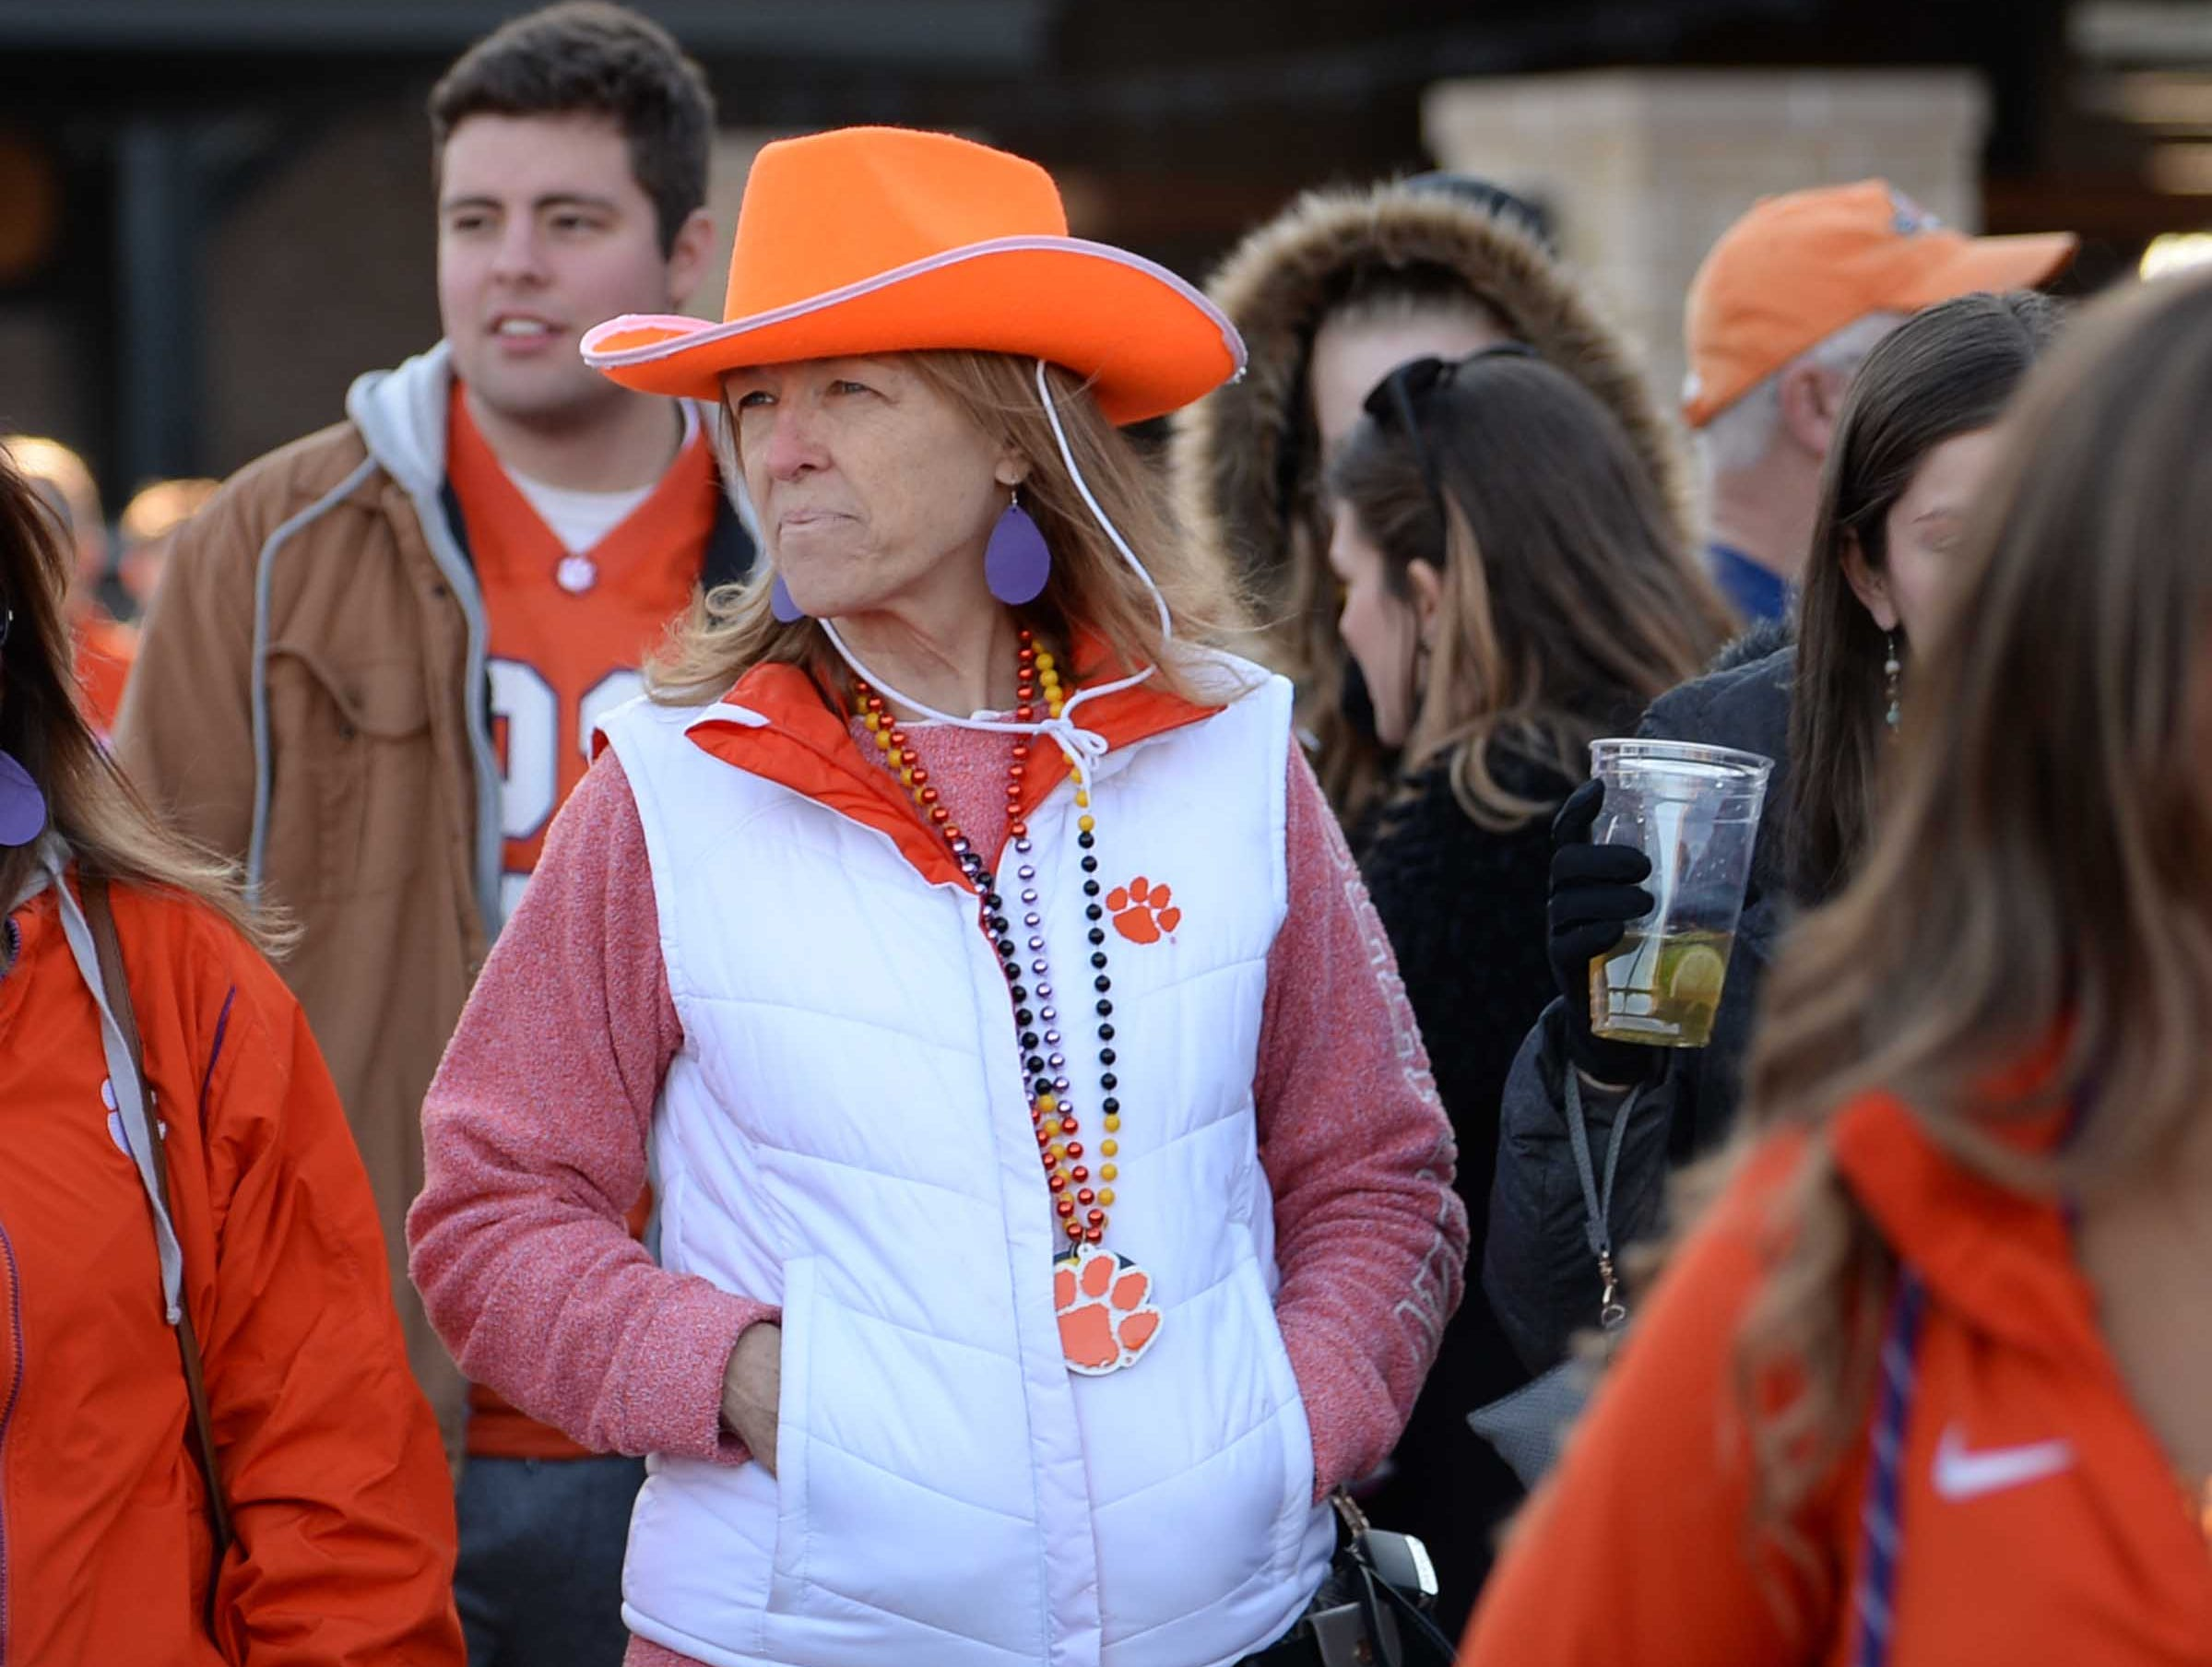 Lindsey Treglia of Clemson wears an orange cowboy hat at the Battle of the Bands competition in Arlington, Texas December 28, 2018.